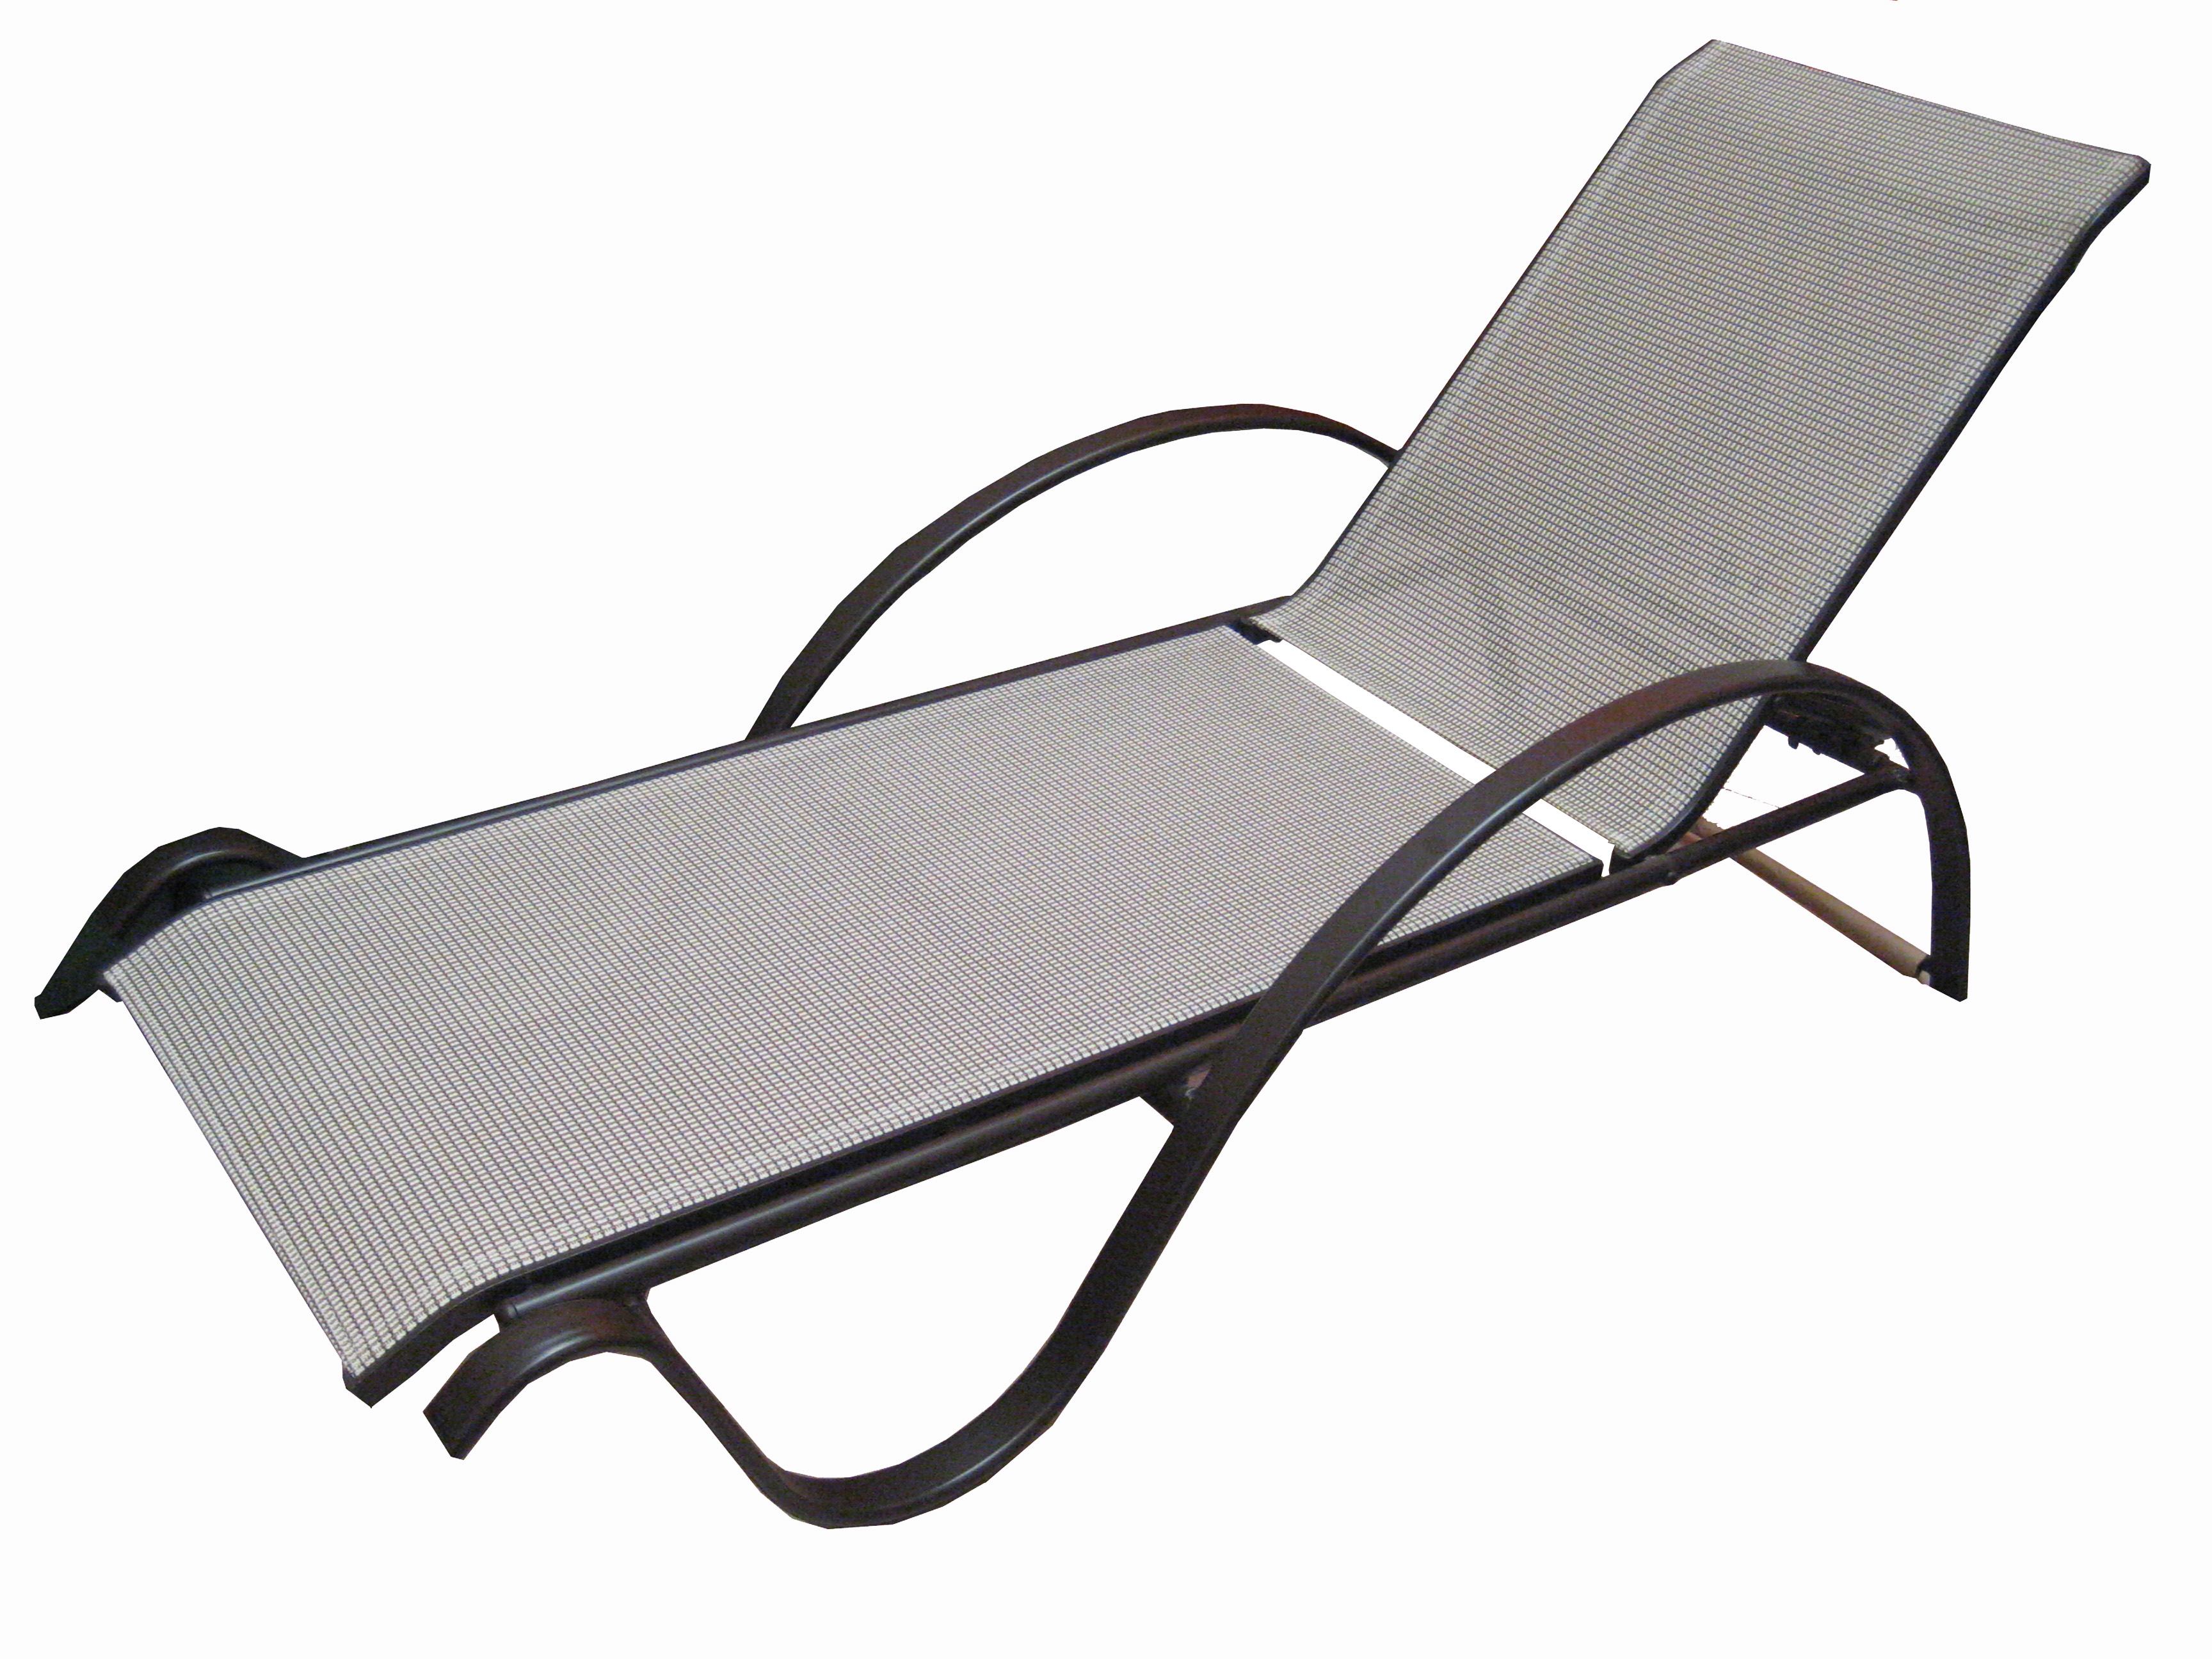 lhy 02 sling chaise reclining lounge chairs soho consolidated corp